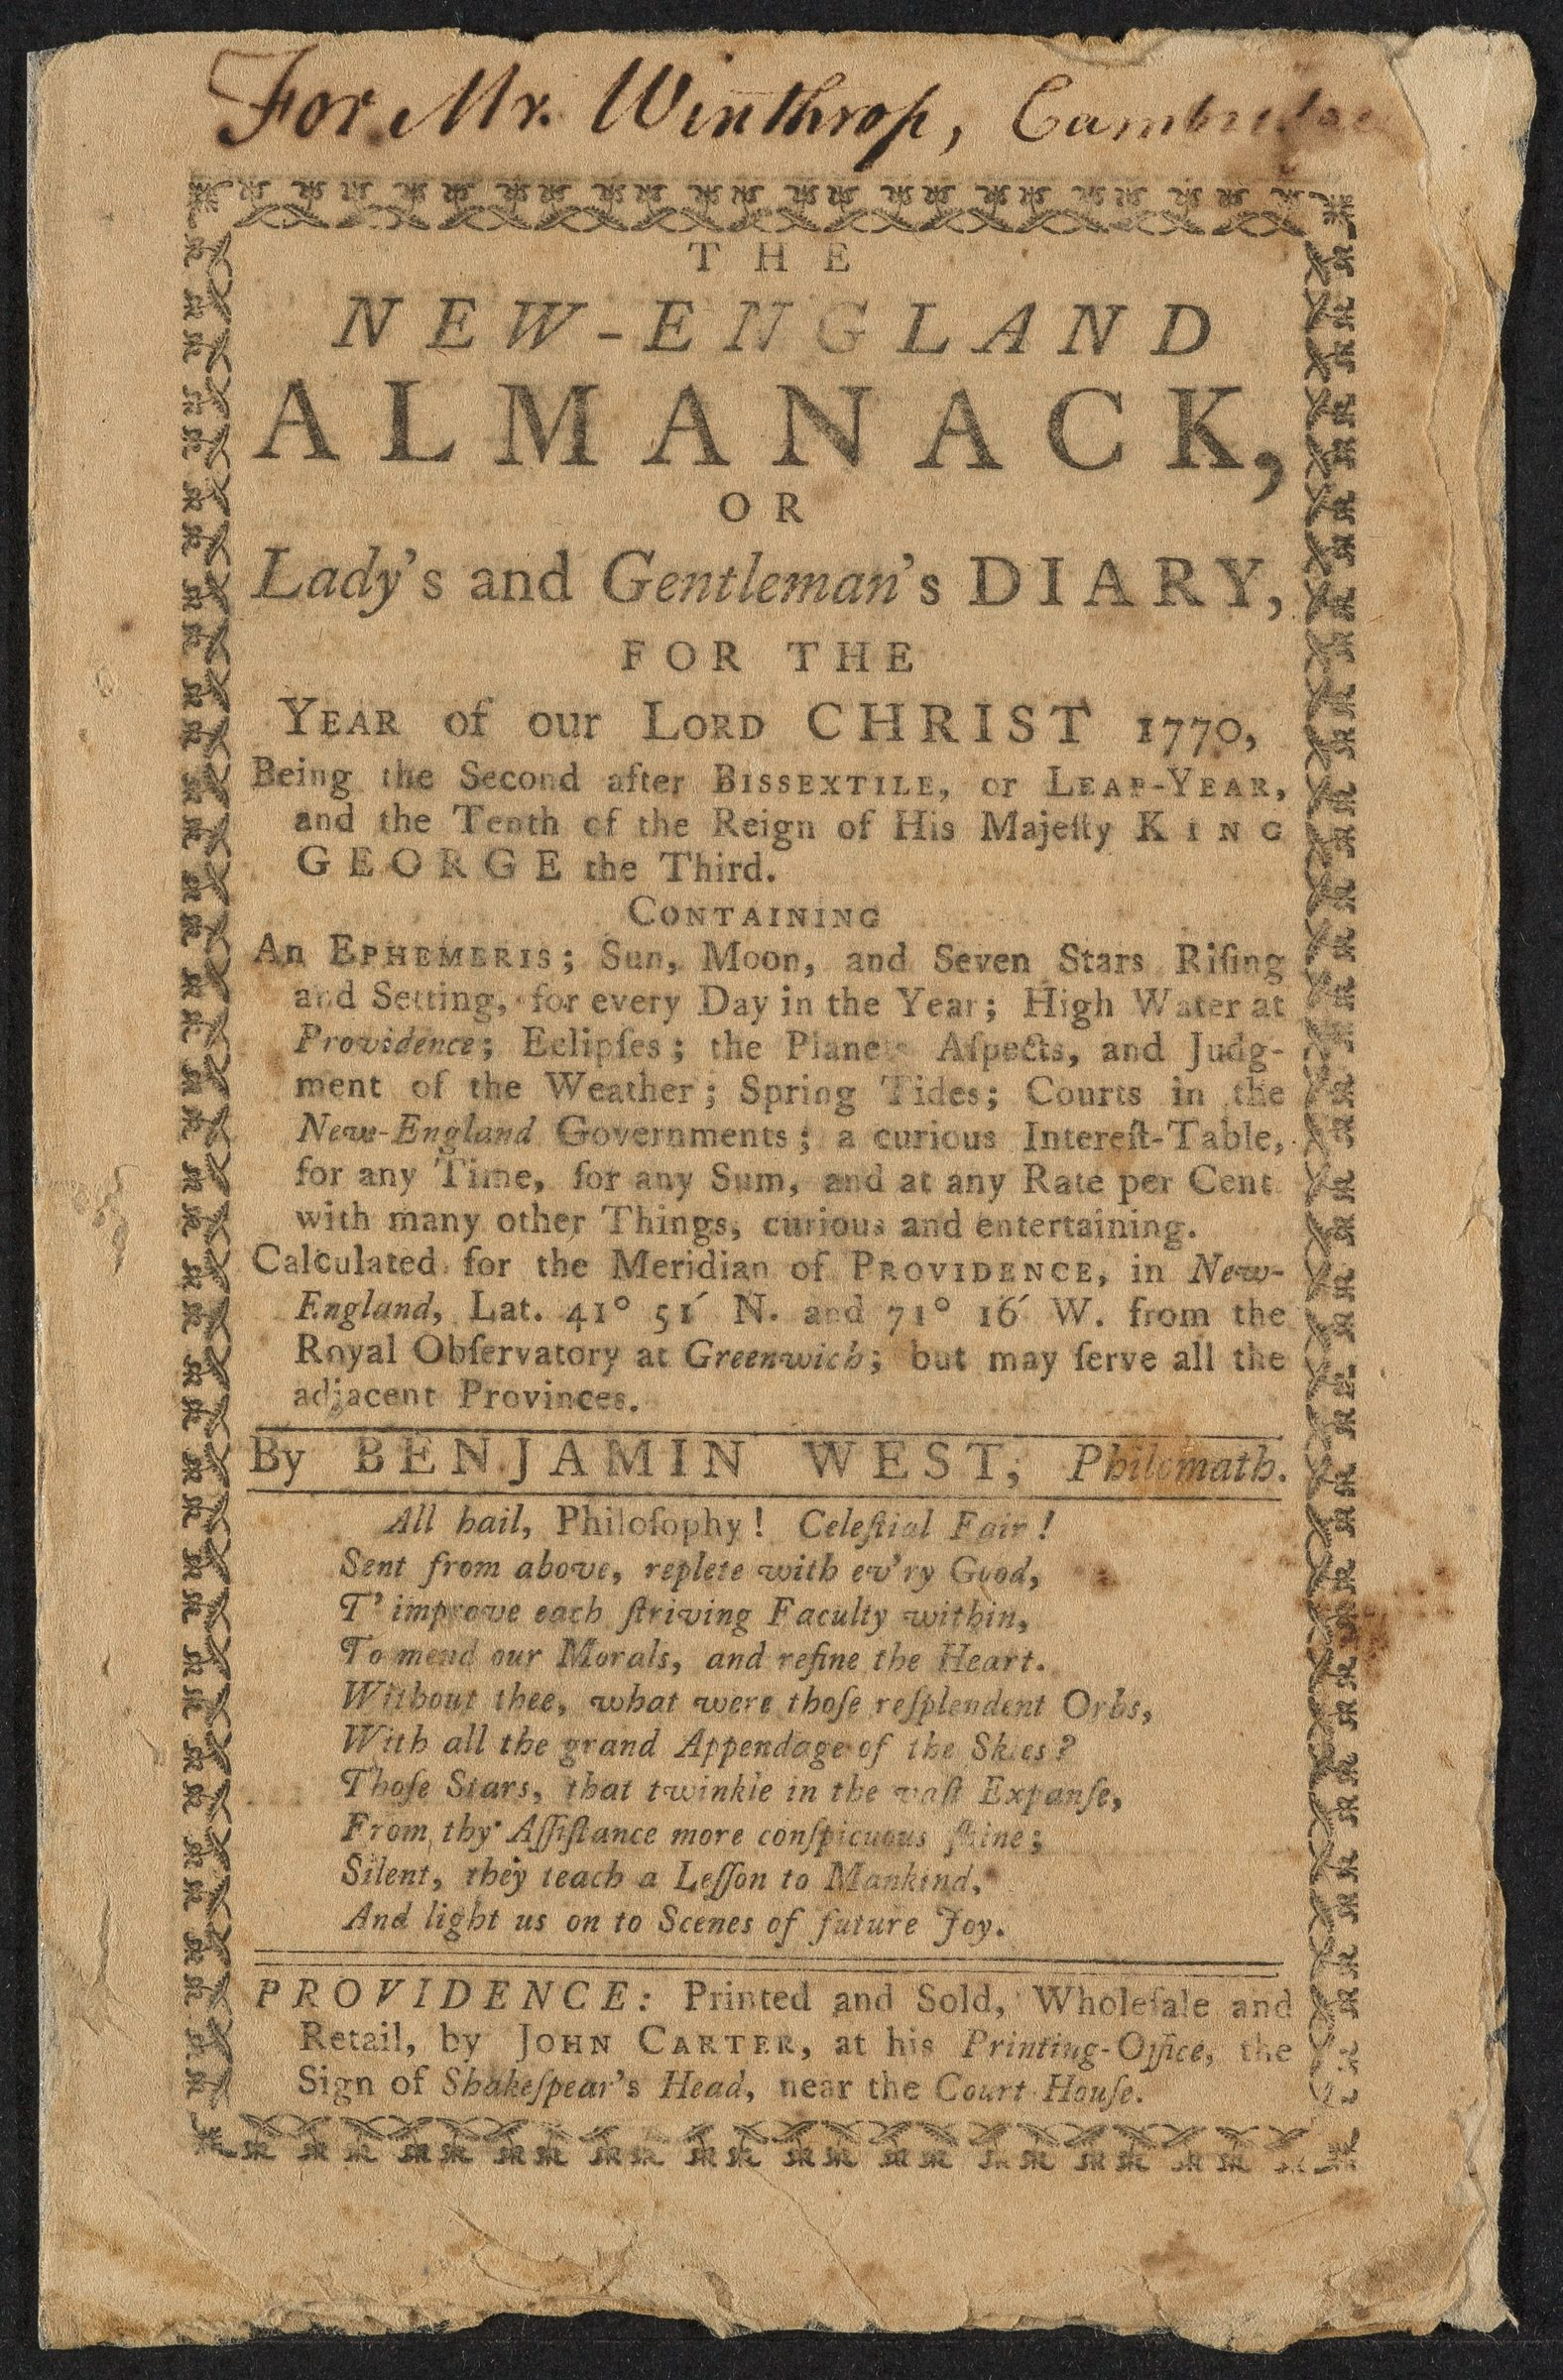 Annotated almanac, 1770